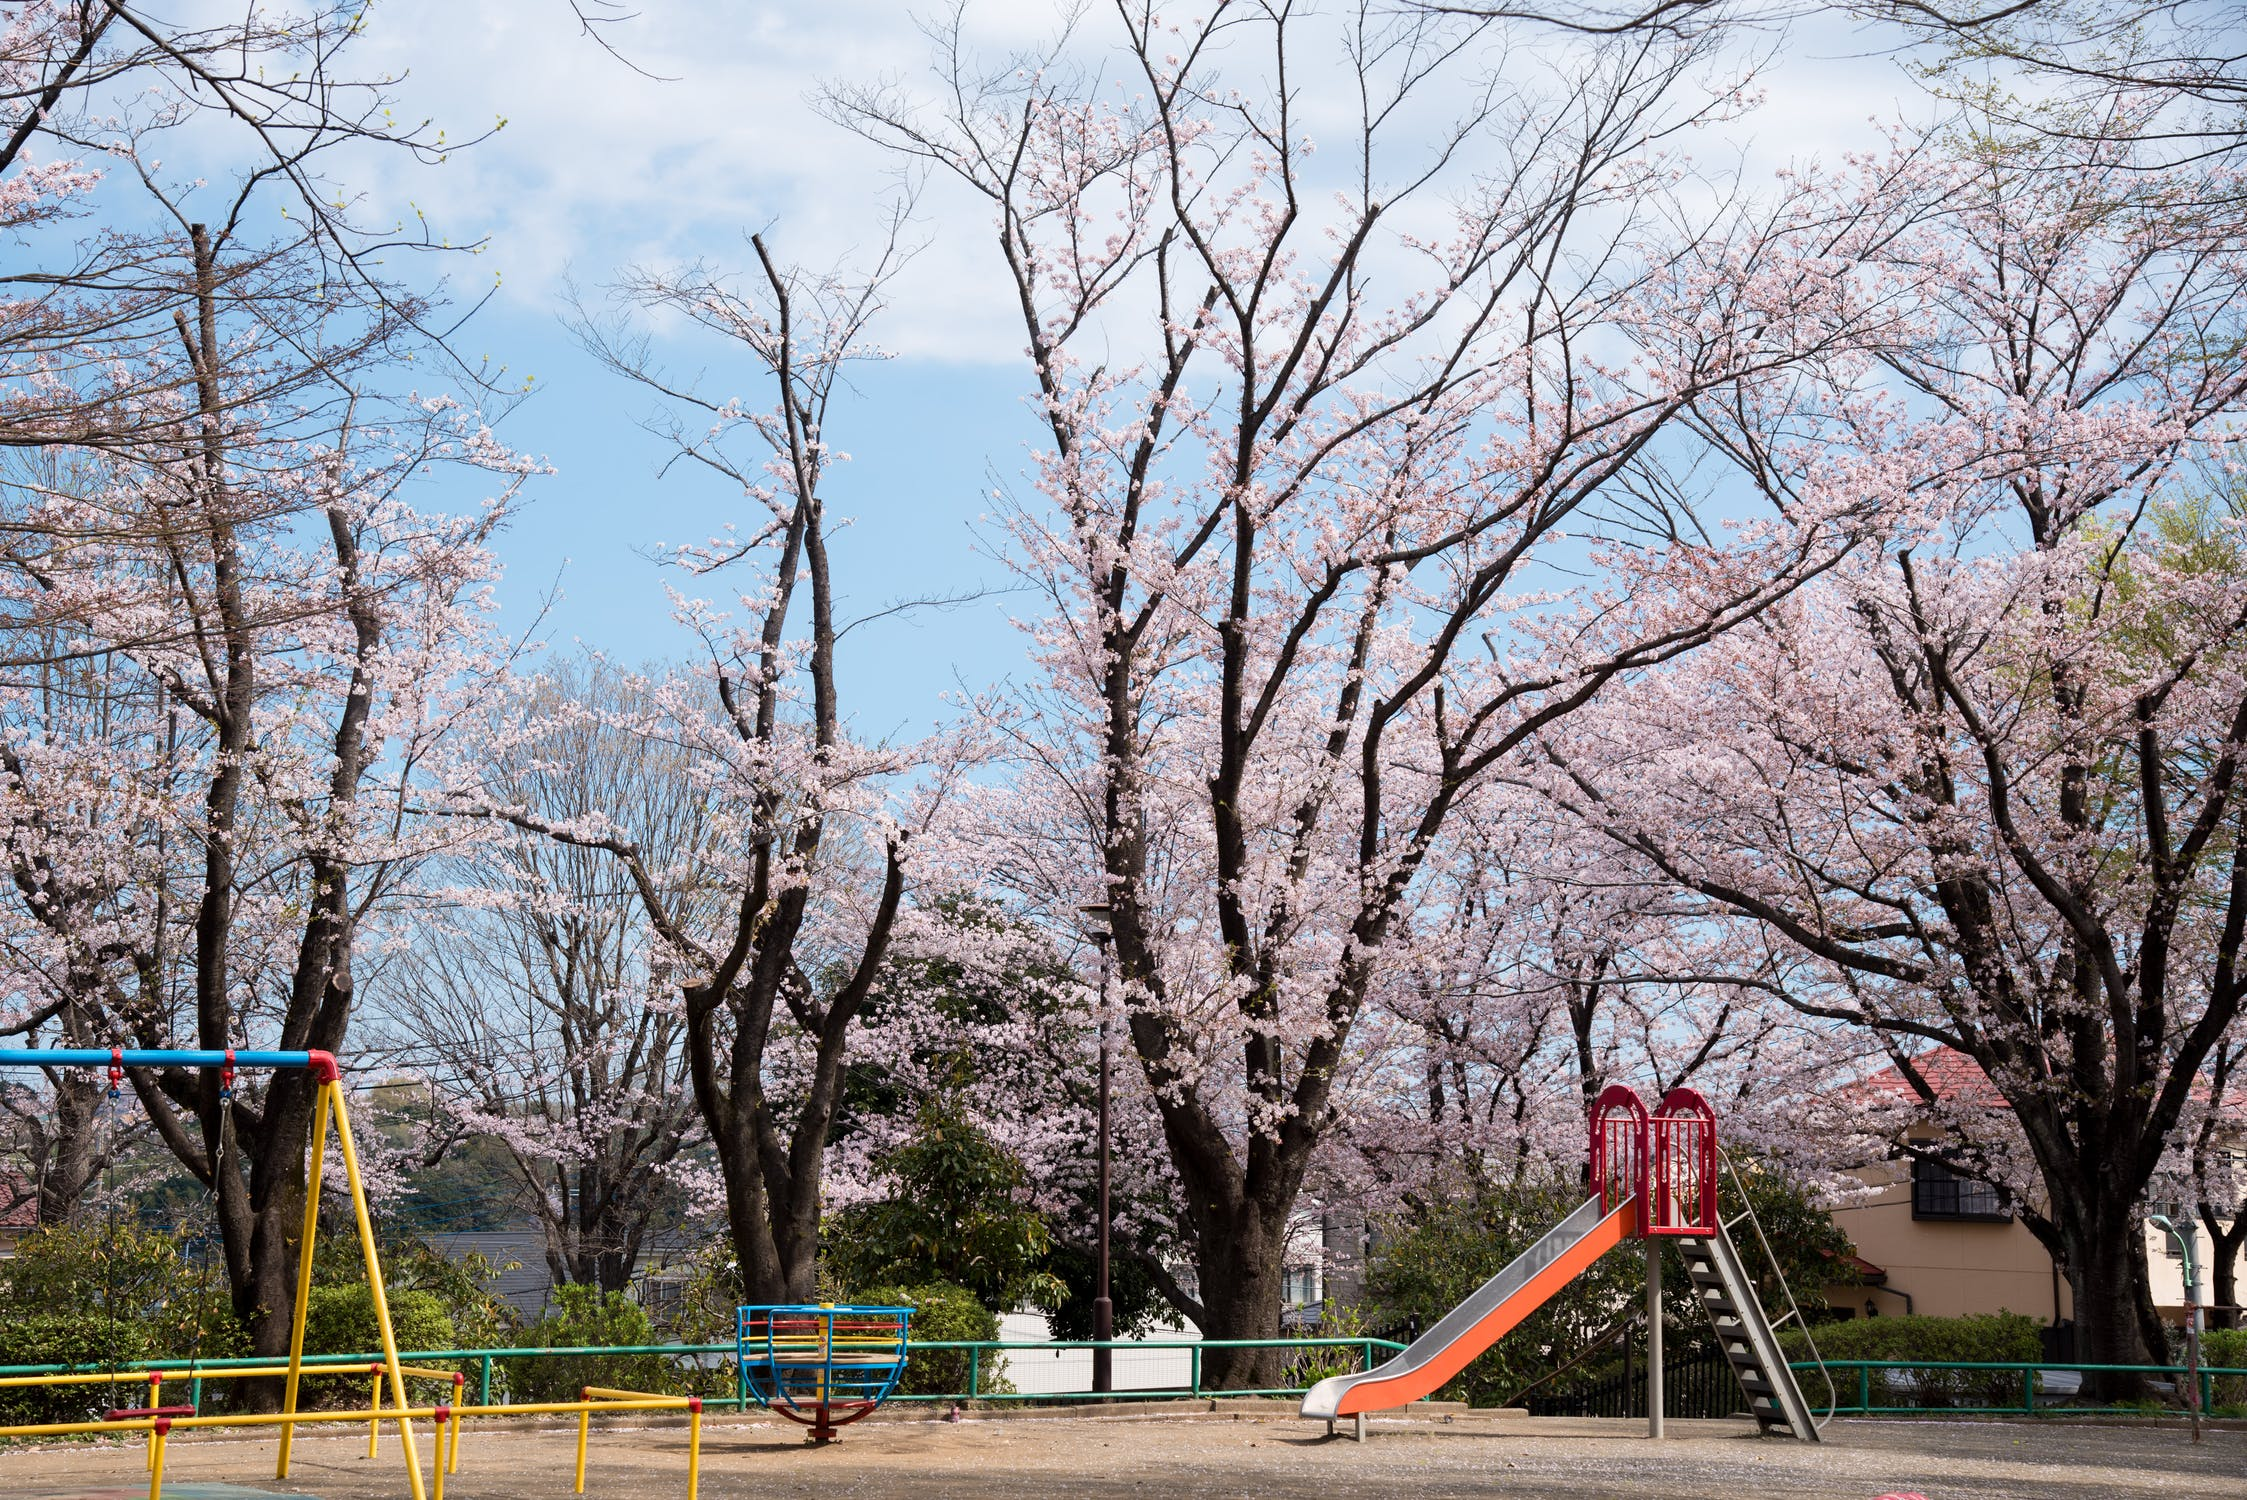 image of the park, playground, and cherry blossom trees